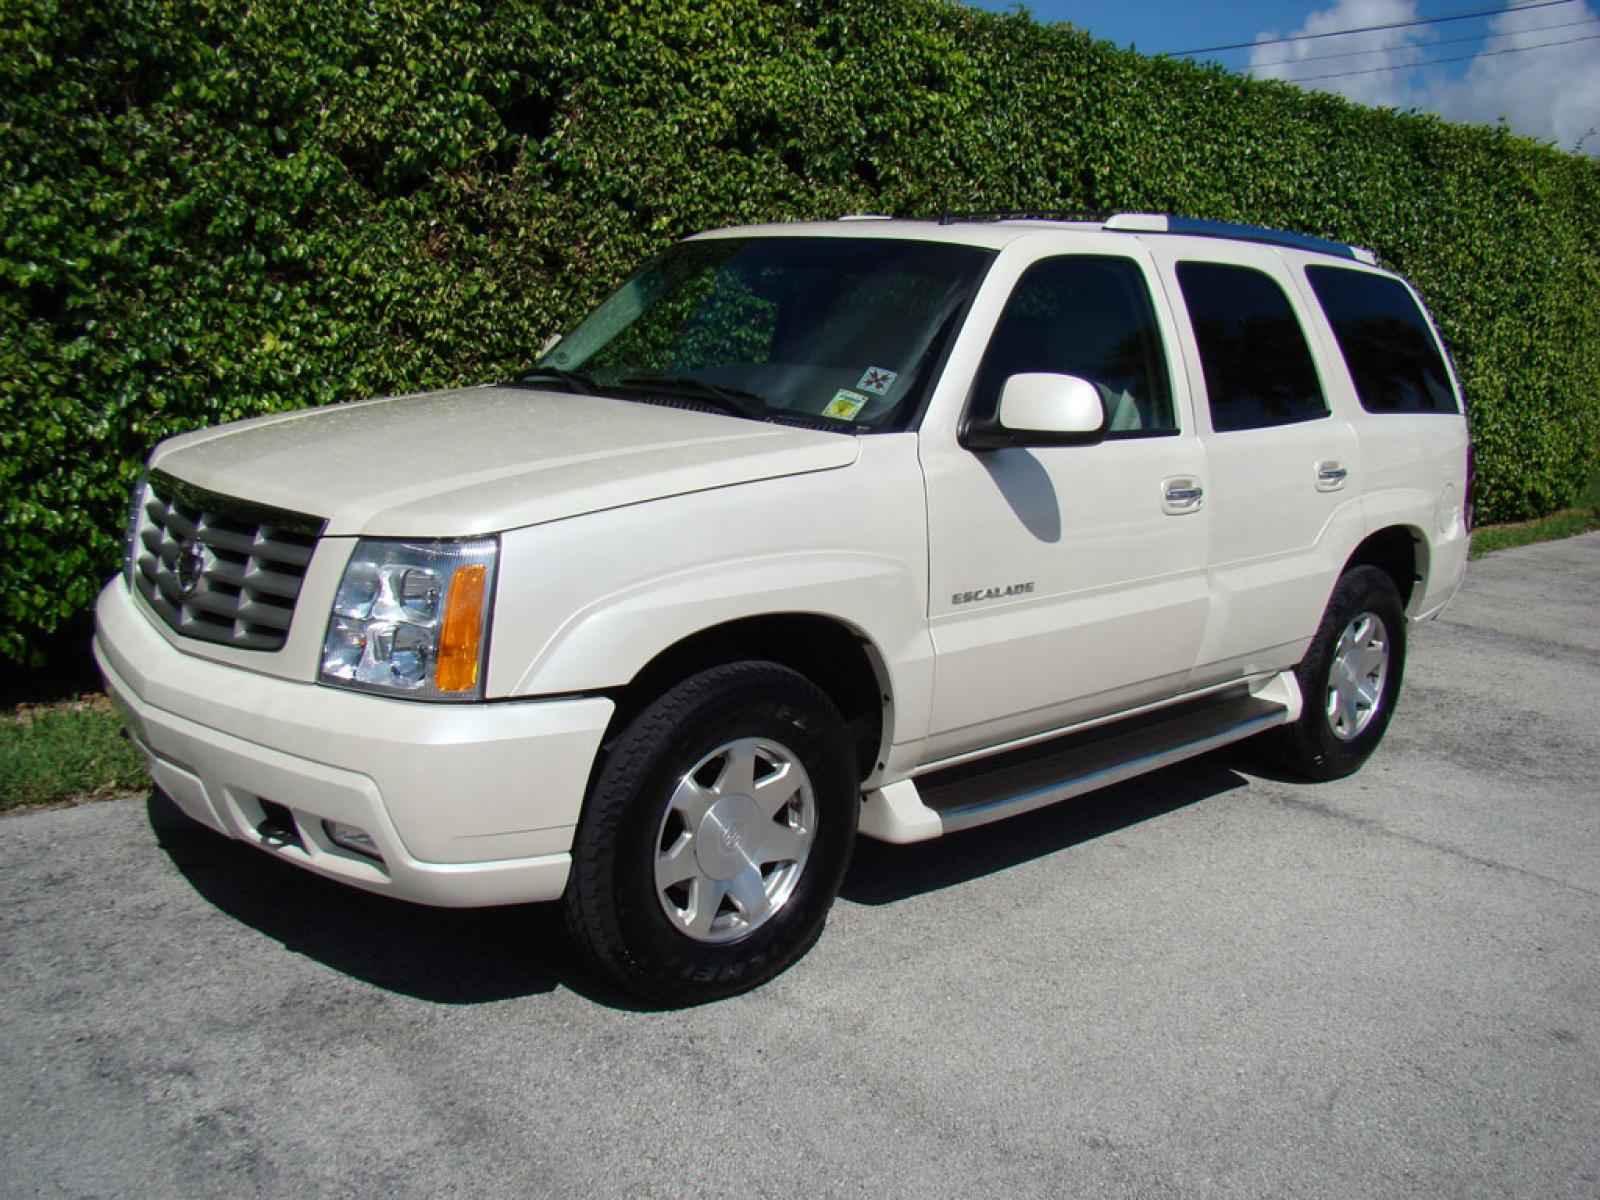 2002 cadillac escalade 1 800 1024 1280 1600 origin